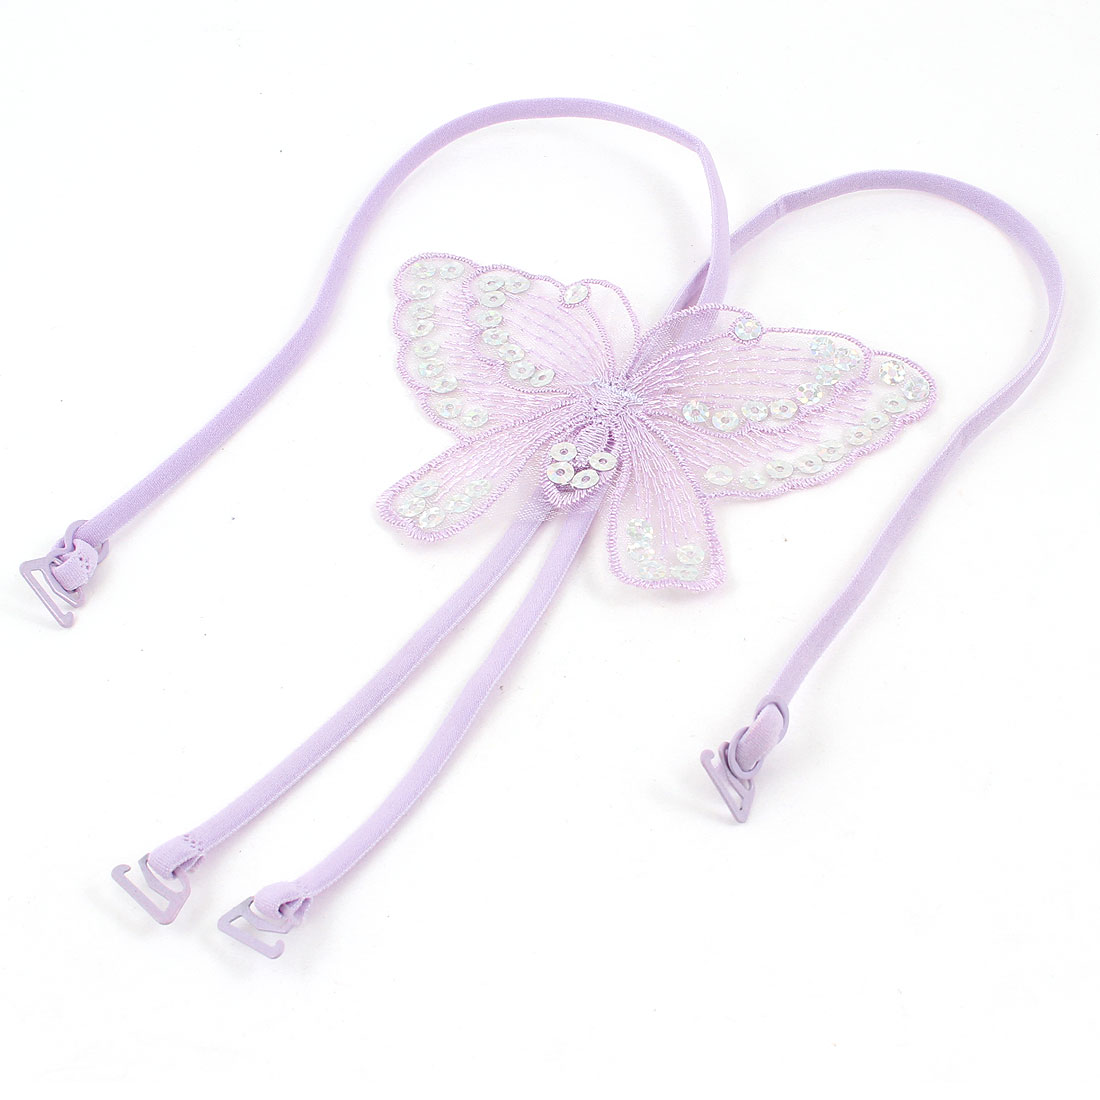 Slim Band Butterfly Shape Cross Back Bra Shoulder Straps Light Purple for Women